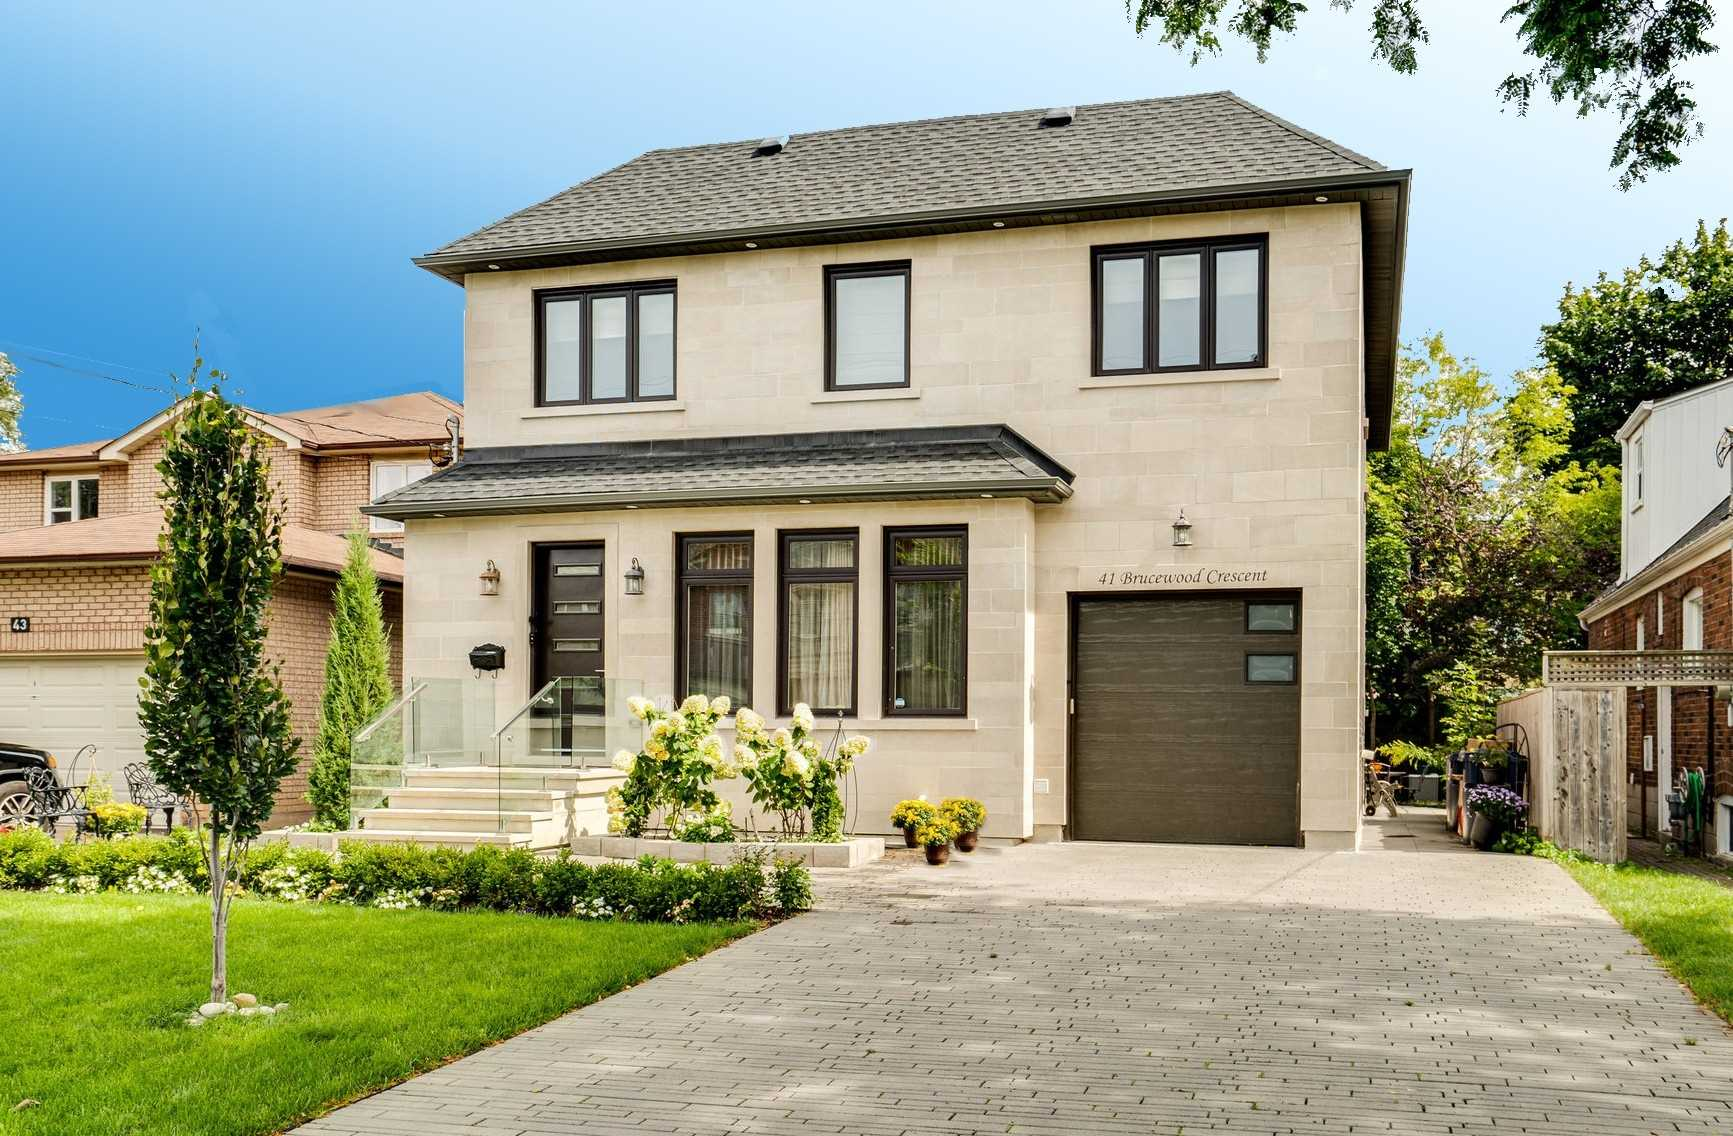 41 Brucewood Cres, Toronto, Ontario M6A2G7, 4 Bedrooms Bedrooms, 10 Rooms Rooms,6 BathroomsBathrooms,Detached,For Sale,Brucewood,C5384989